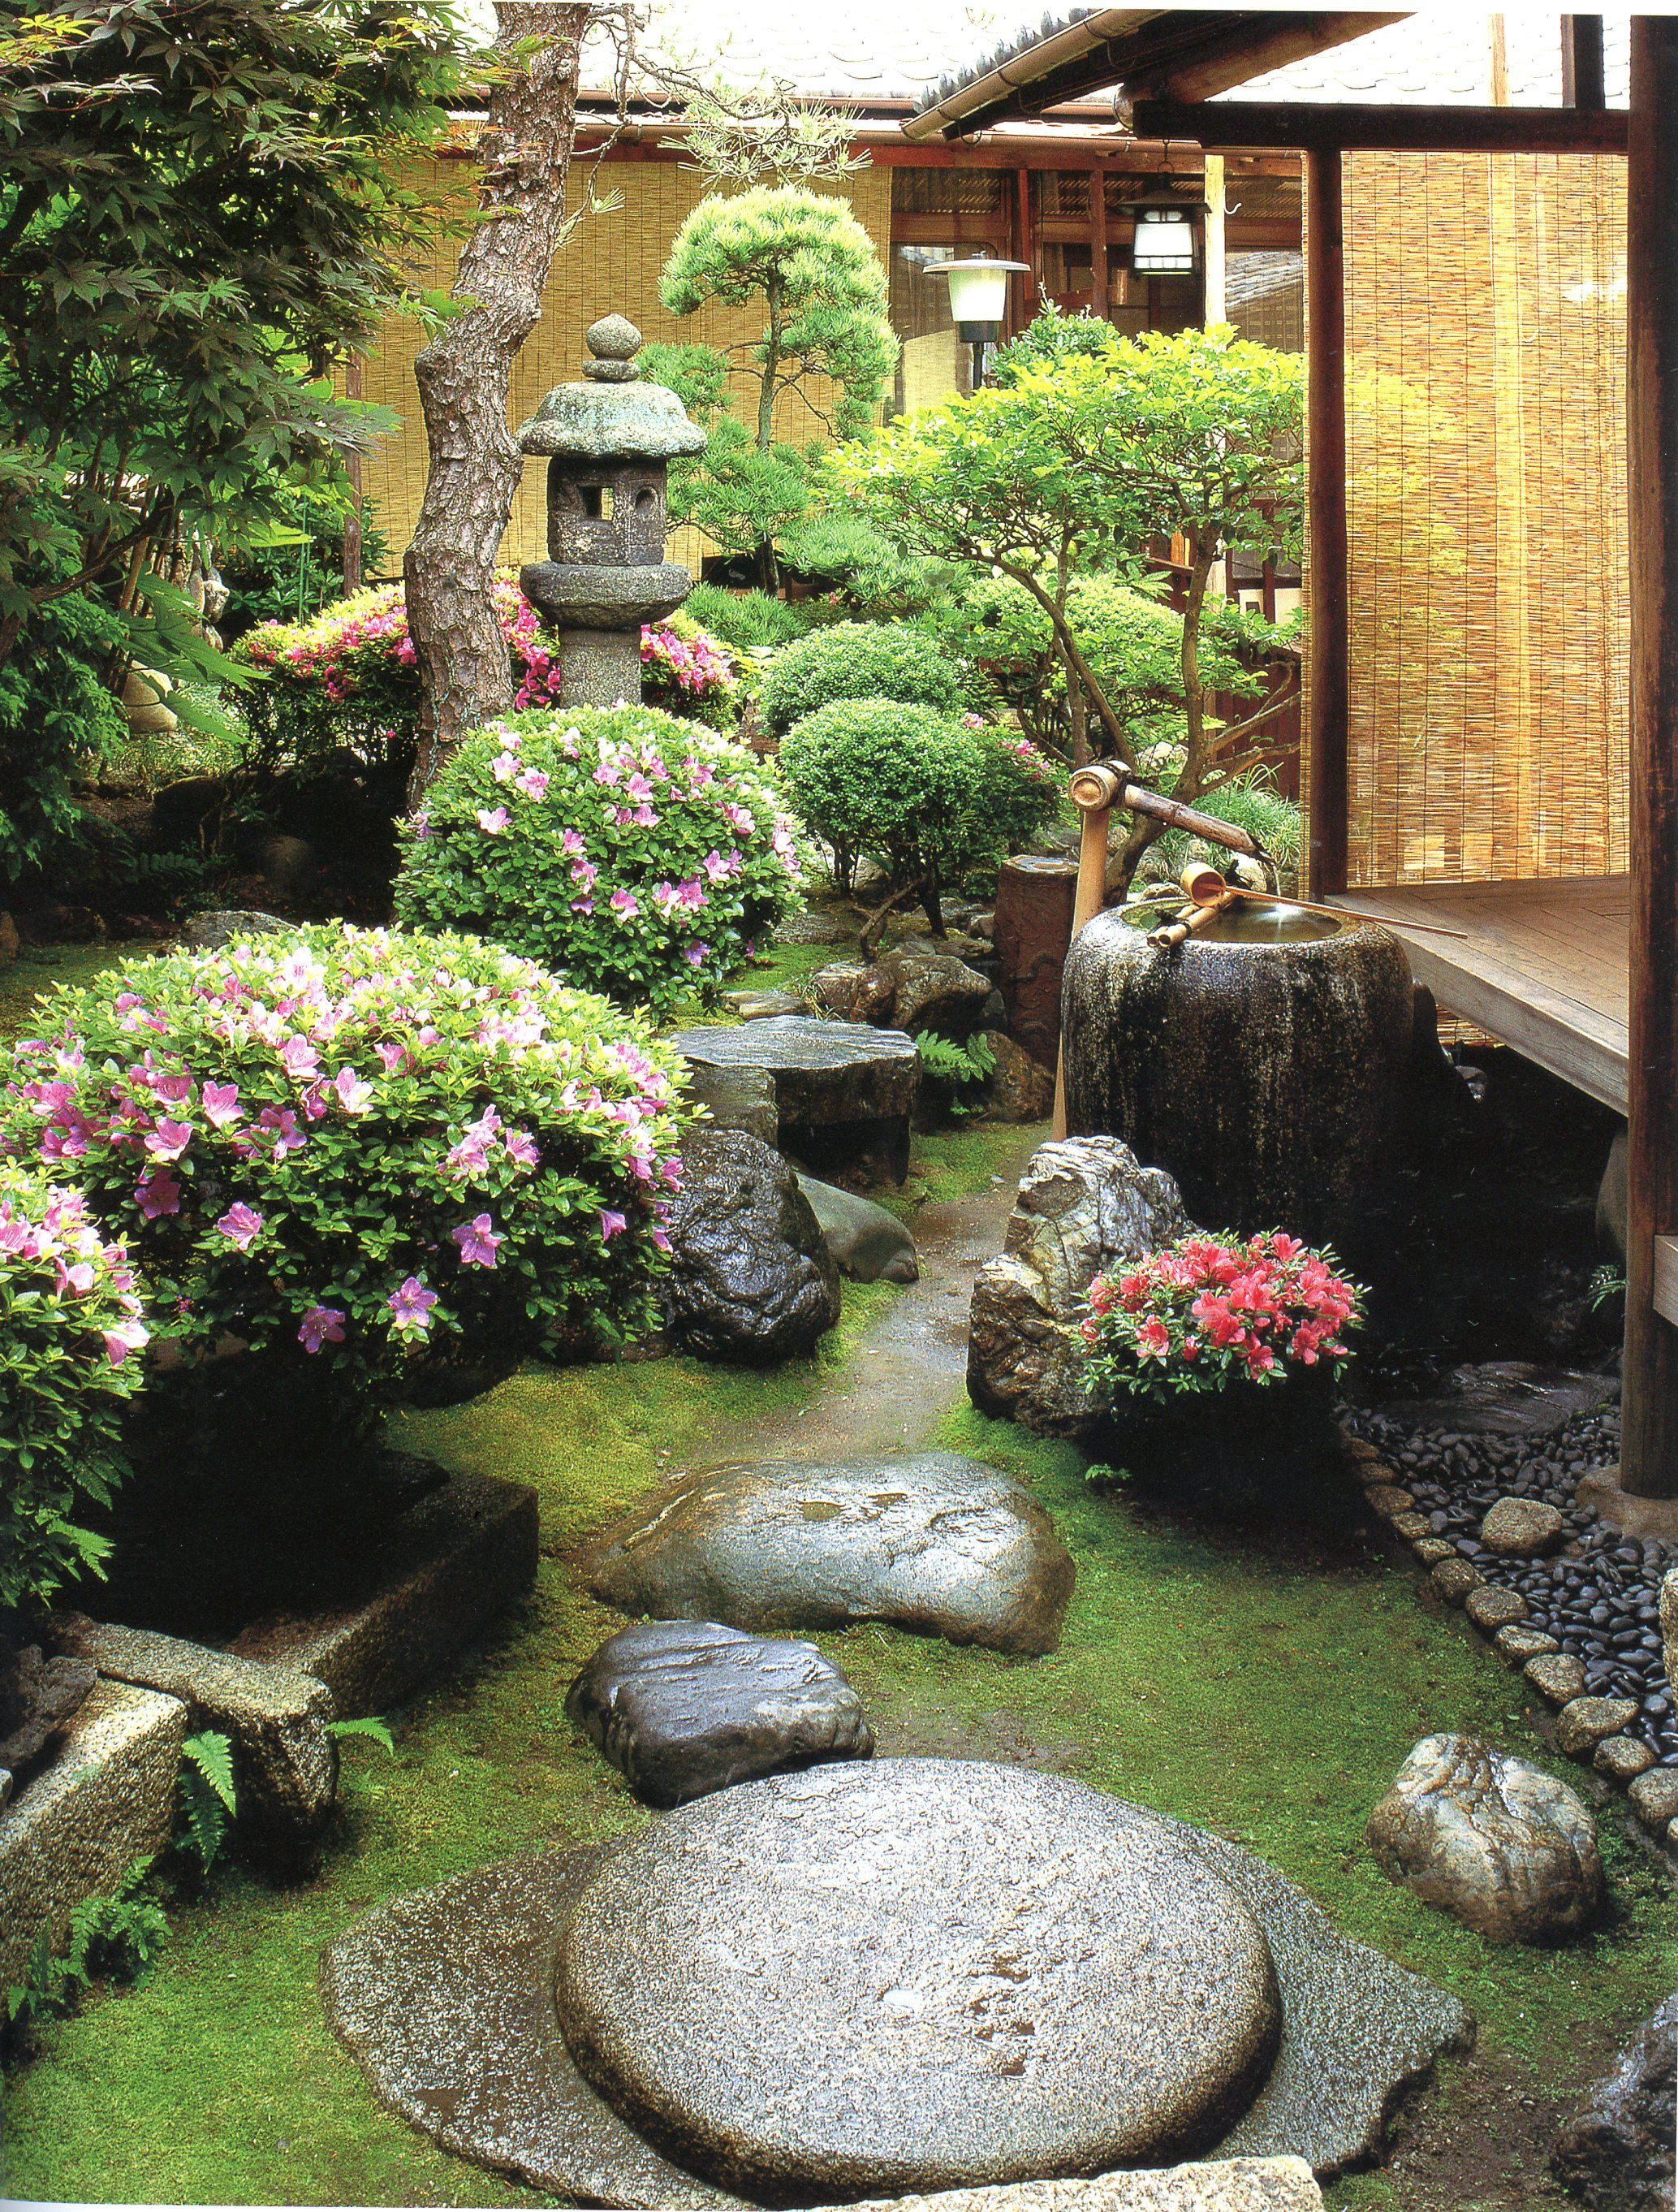 Yoshida Residence Landscapes for Small Spaces Japanese